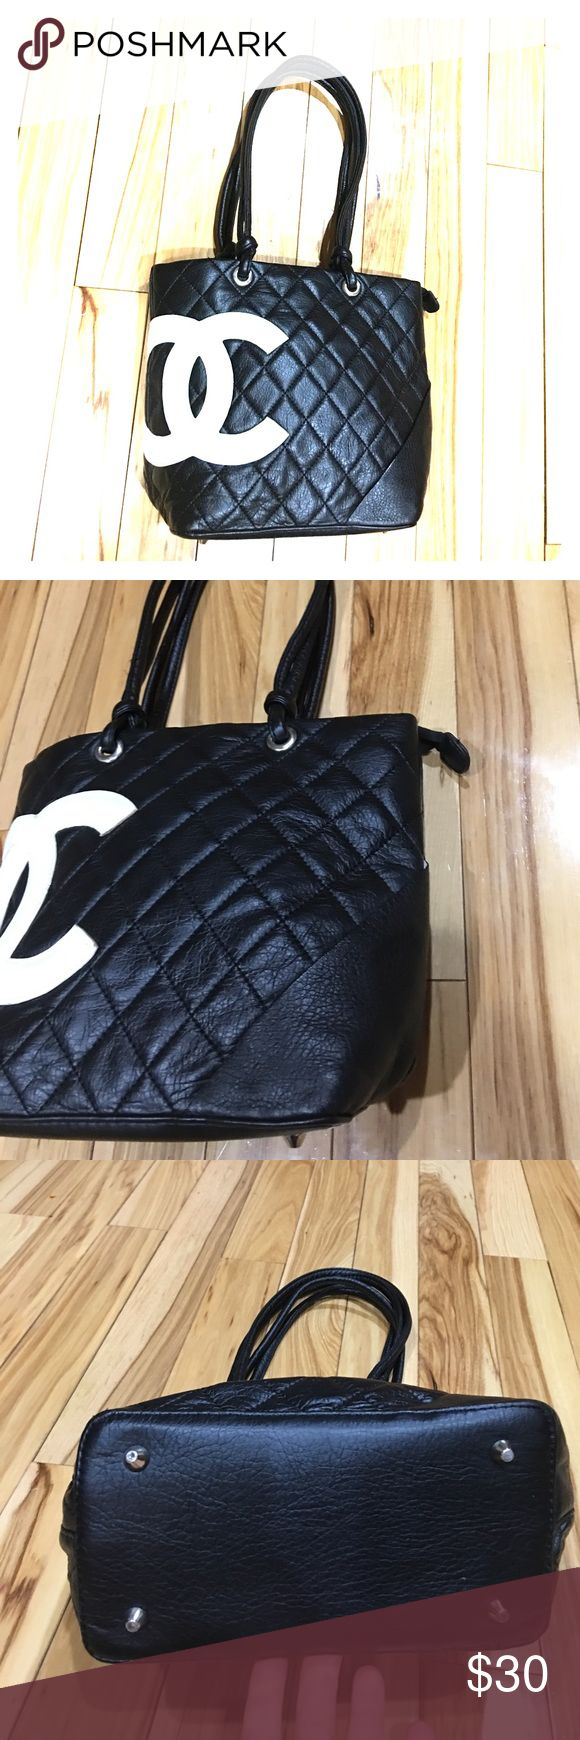 Chanel black white small purse cute 💞 Cute Chanel purse small size in great condition hardly used inside has a zipper pocket and a keychain non-smoking home fast delivery at an excellent price get it today Bags